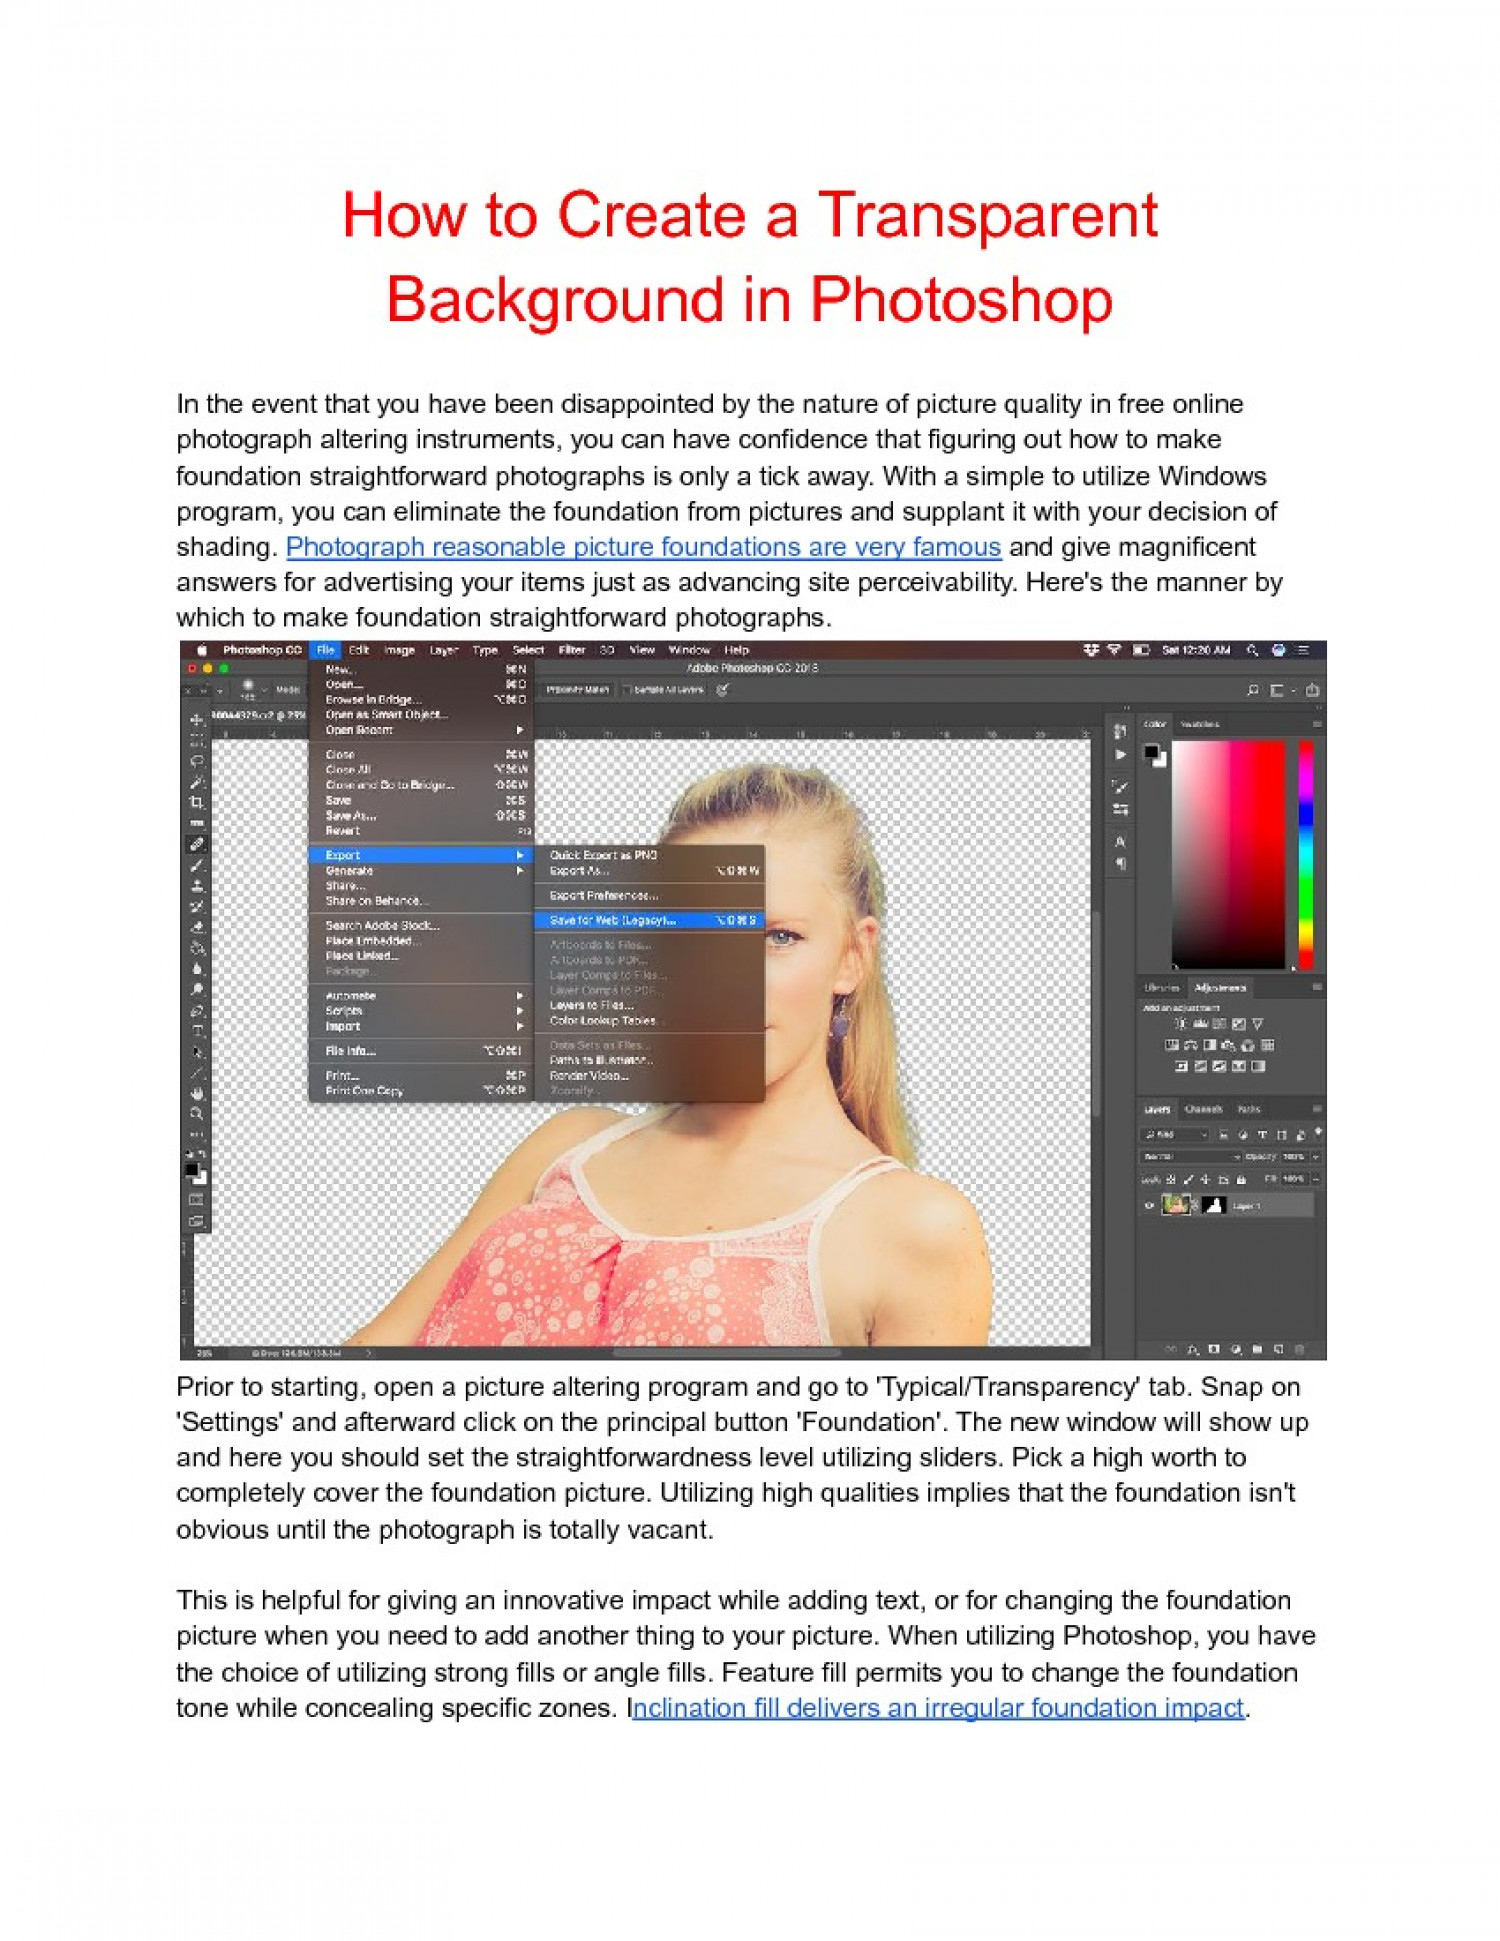 How to Create a Transparent Background in Photoshop Infographic